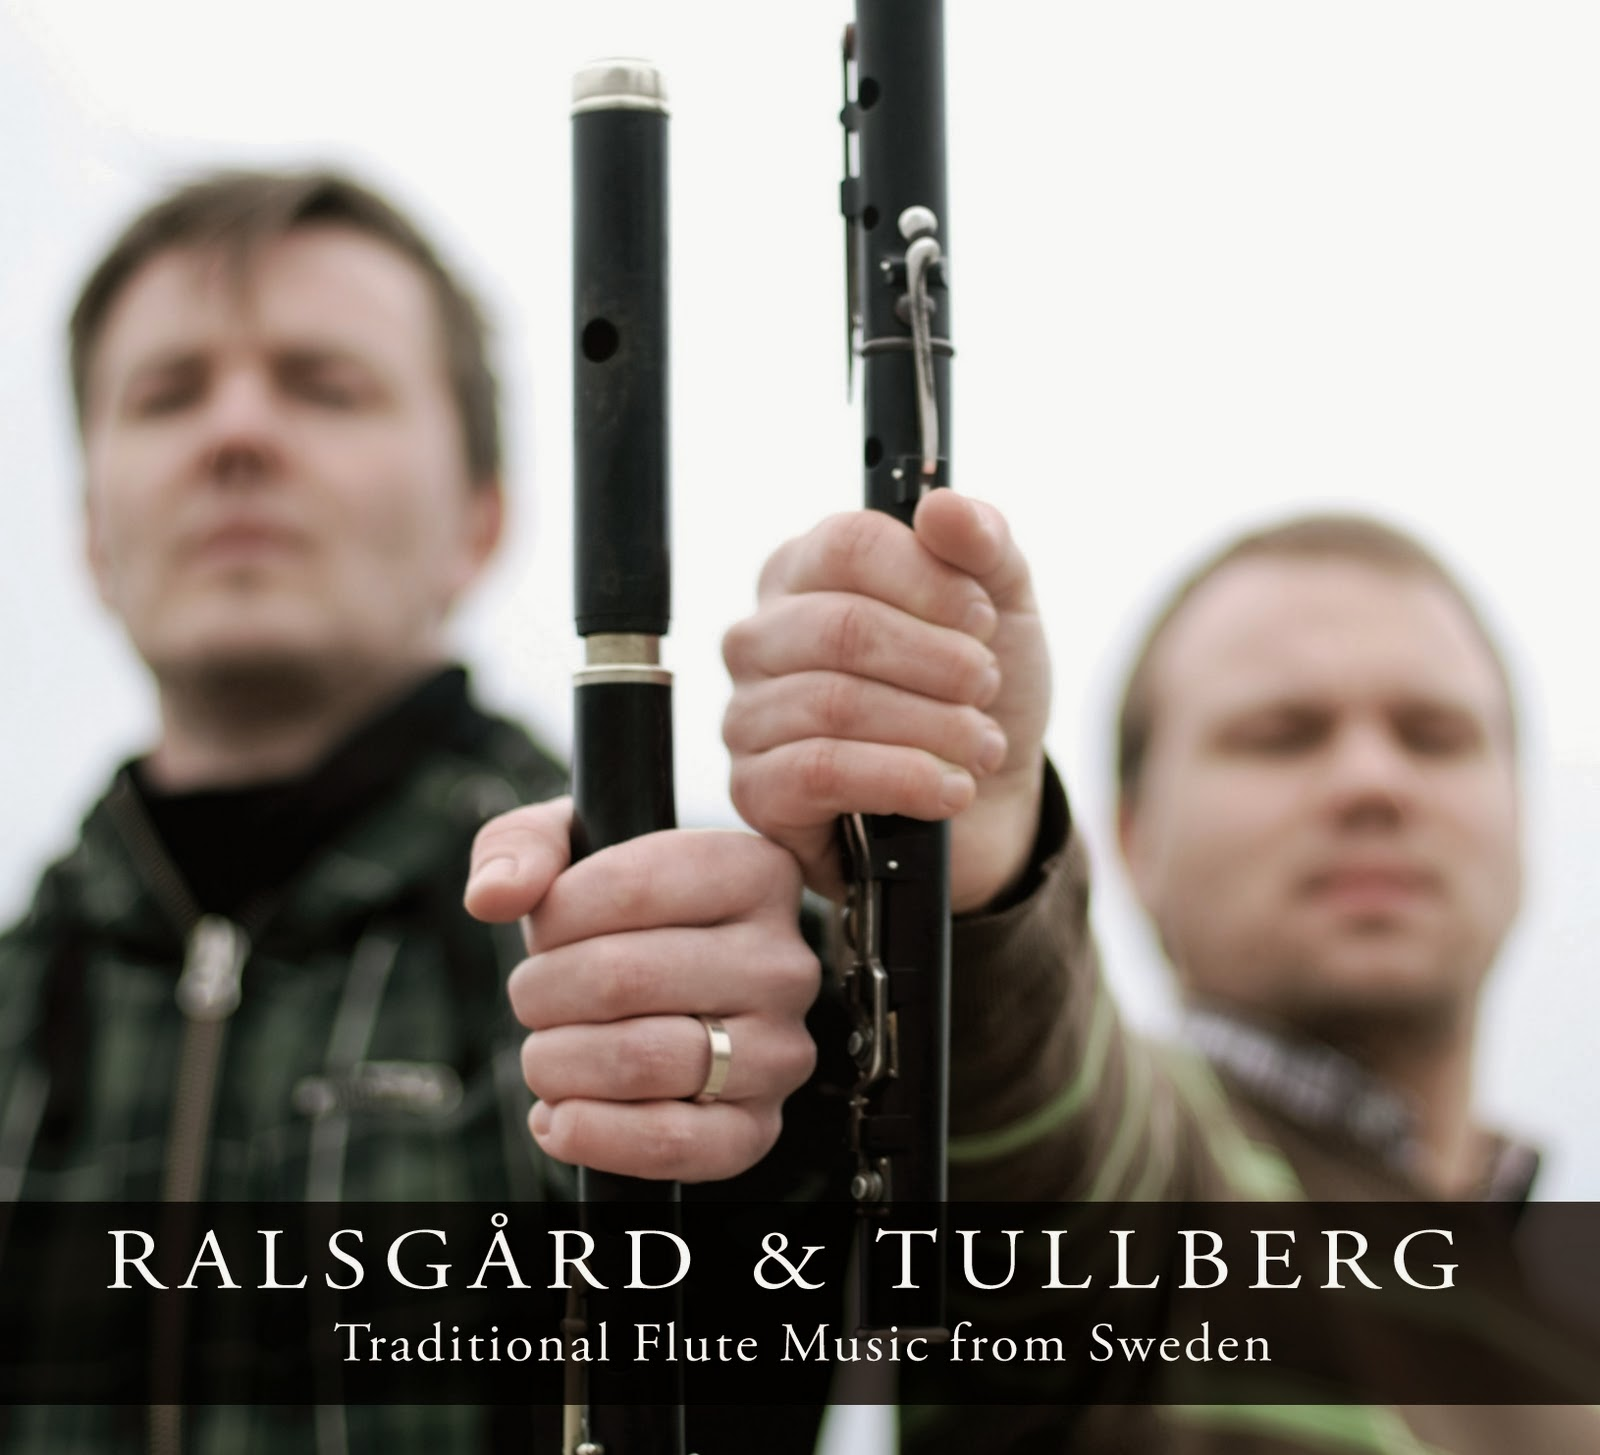 Traditional Flute Music from Sweden